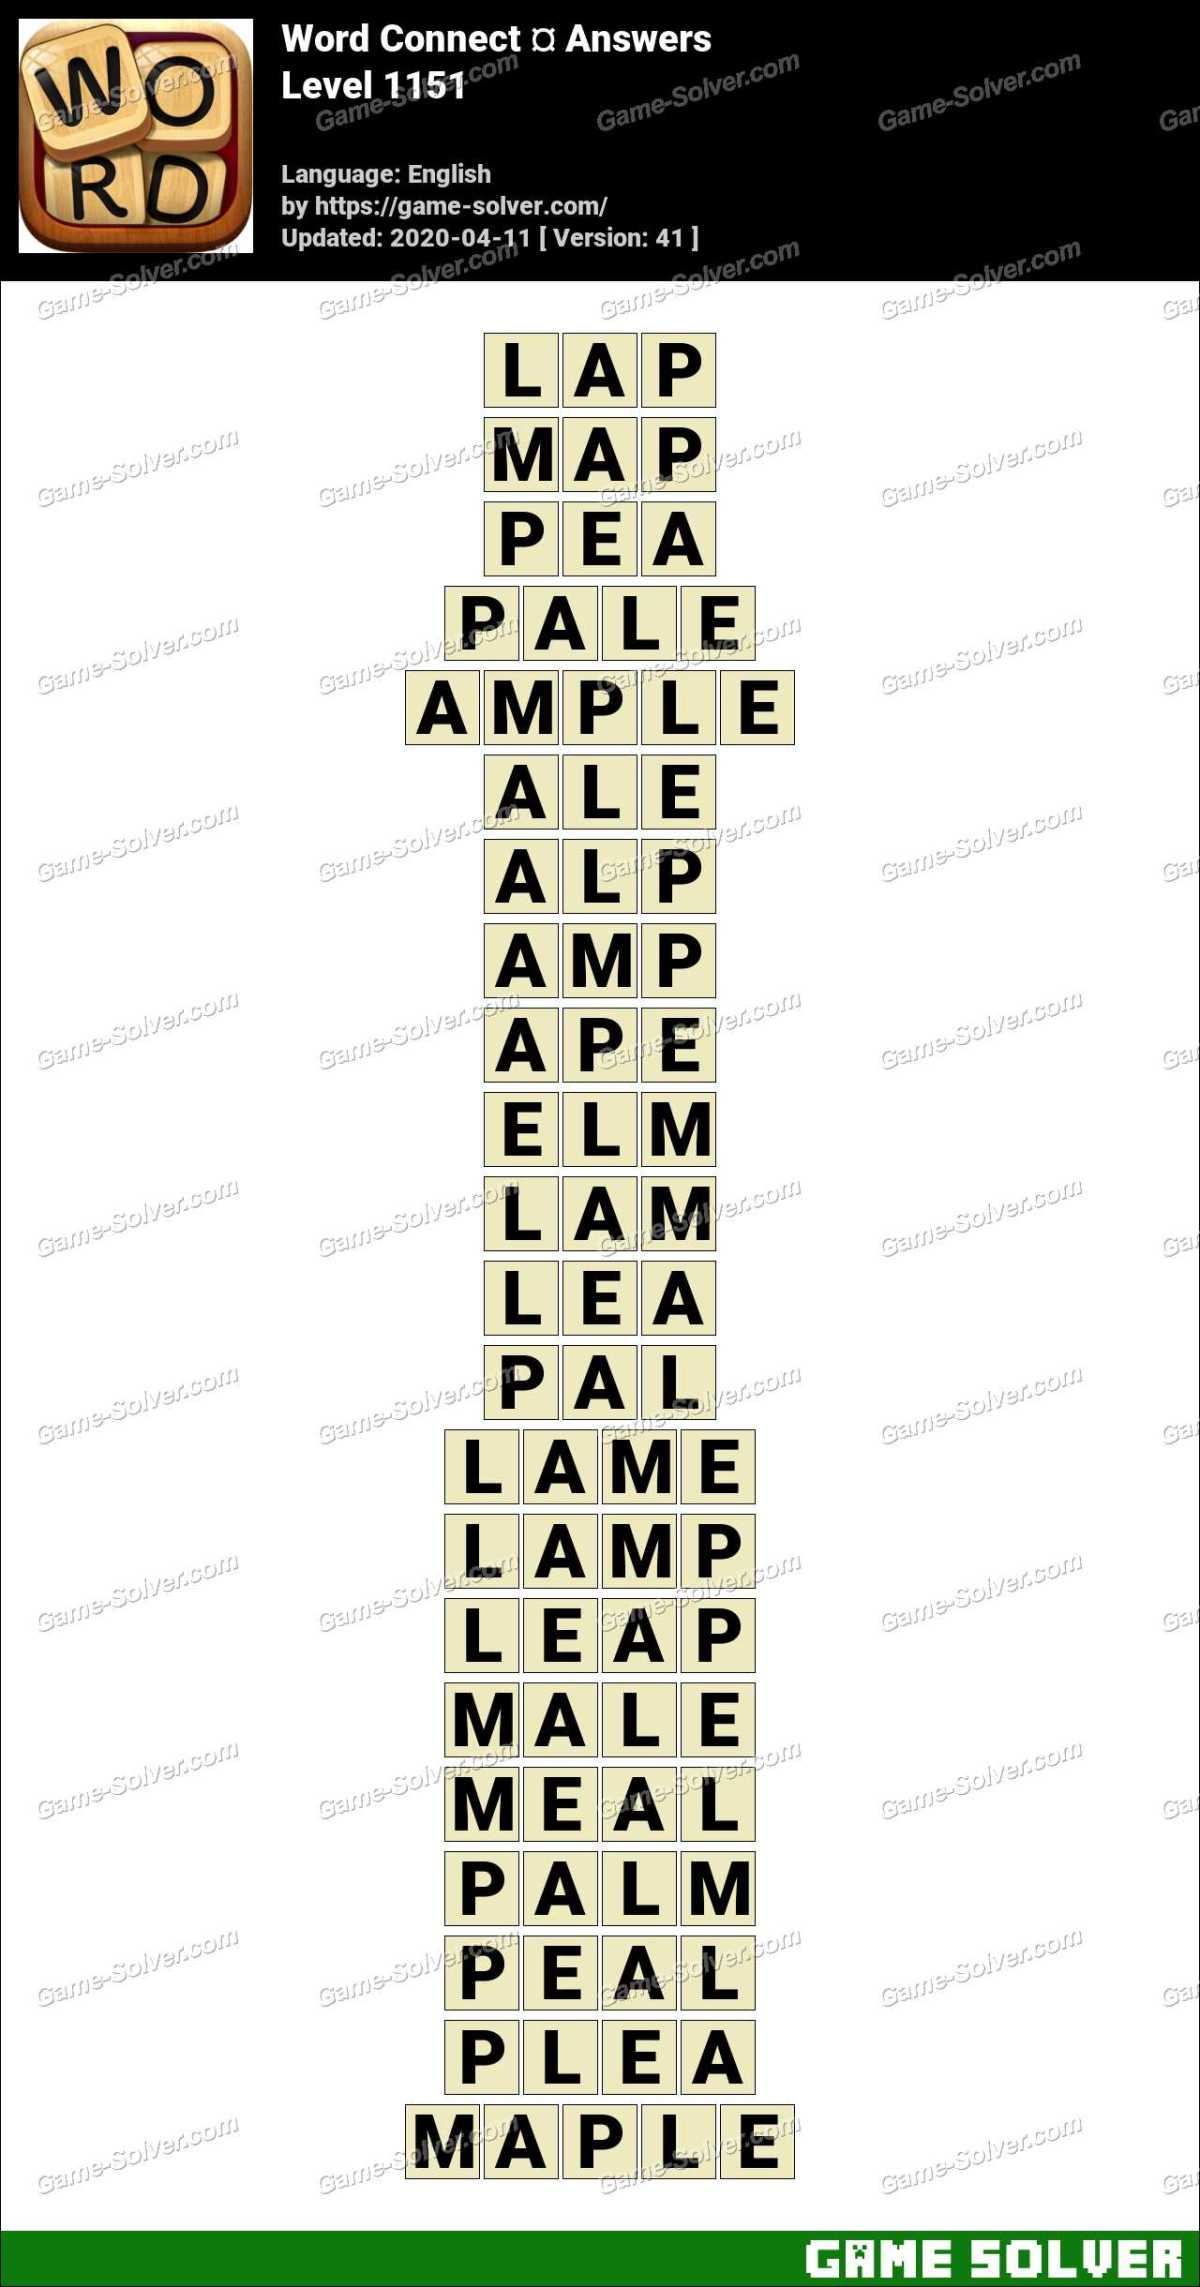 Word Connect Level 1151 Answers